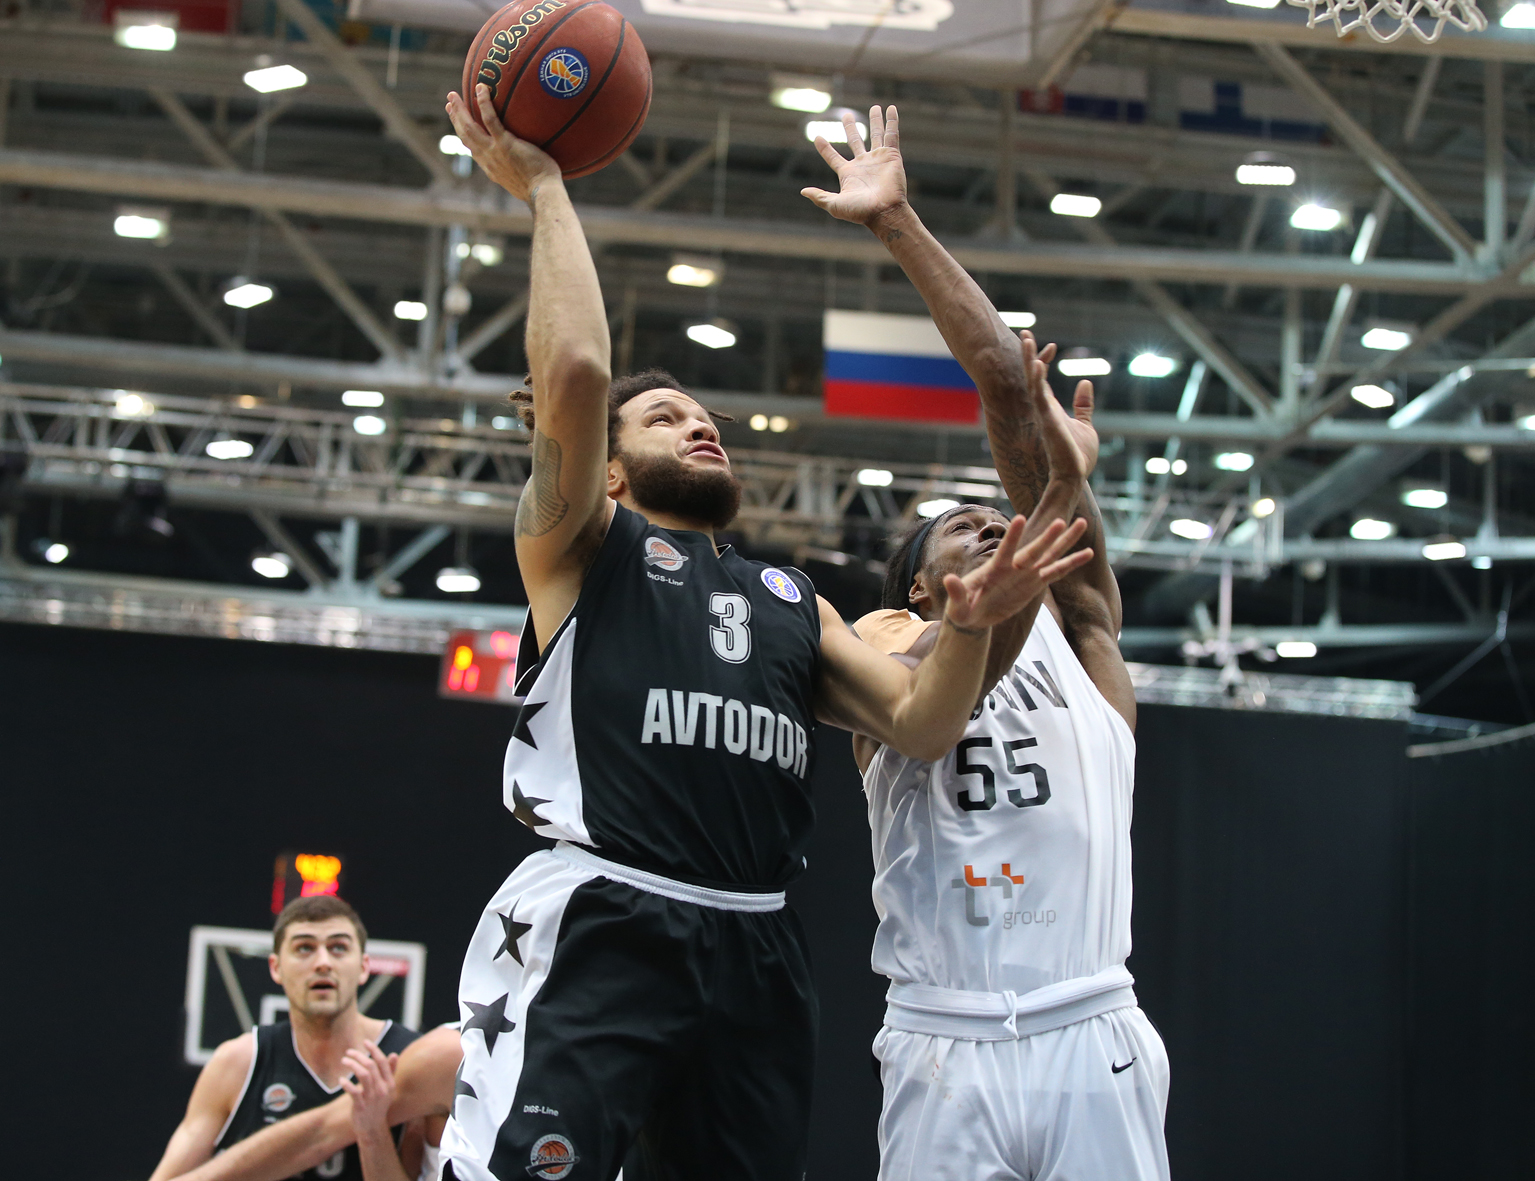 Avtodor Beats Nizhny, Moves Into Playoff Spot